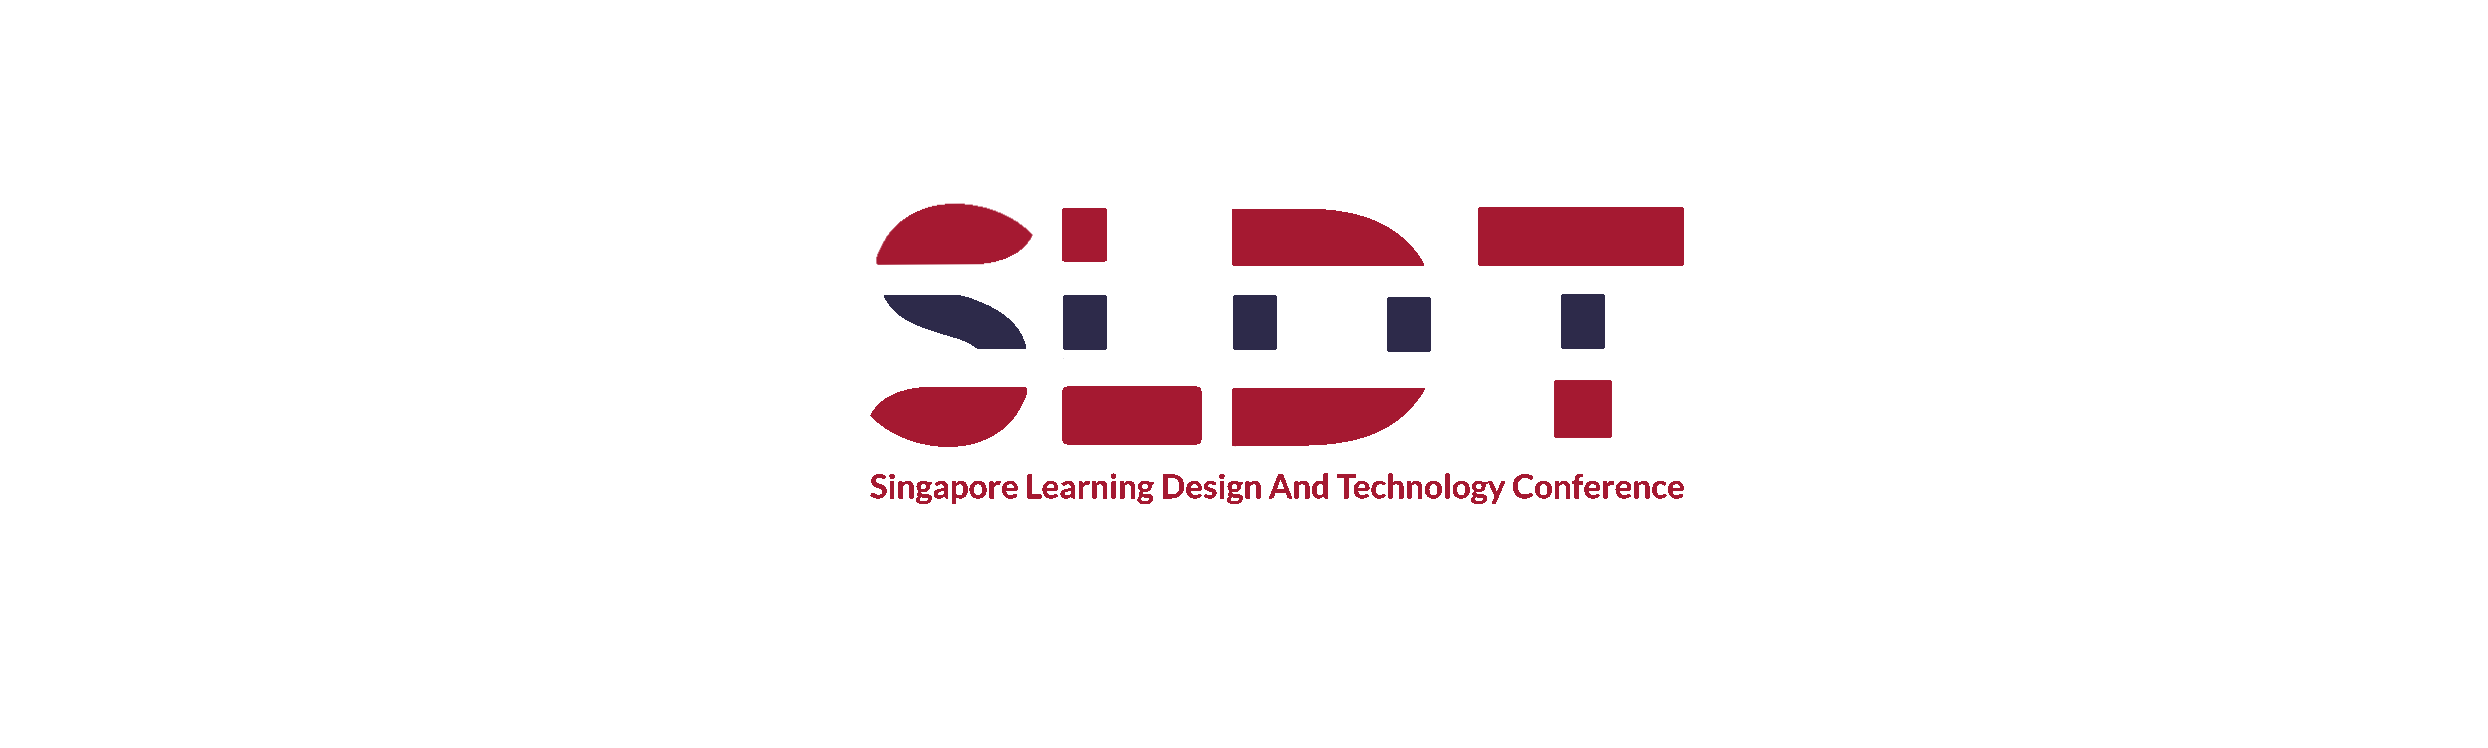 Singapore Learning Design and Technology Conference 2019